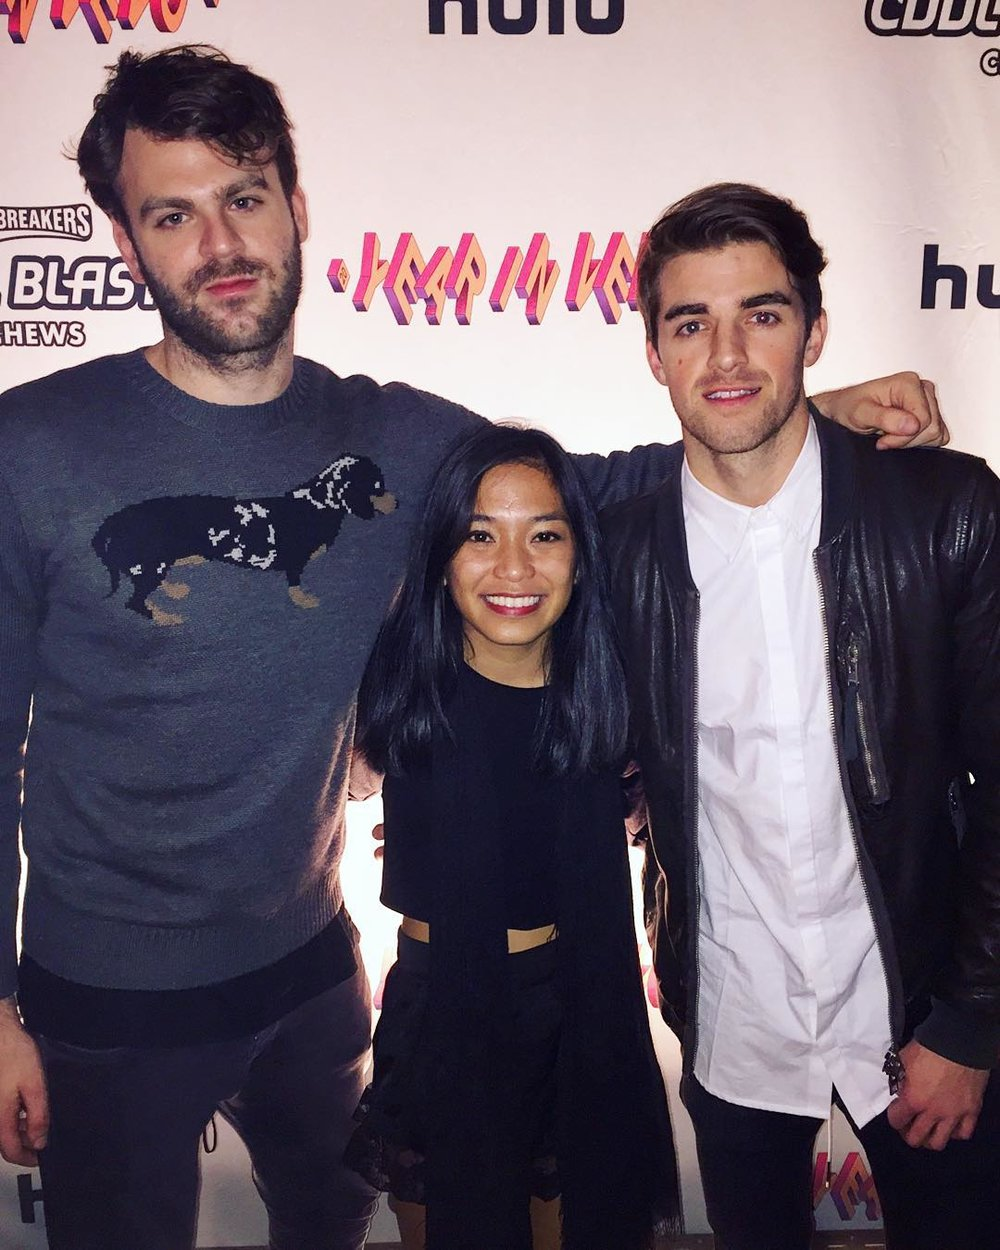 the chainsmokers - The Chainsmokers Open Up About Working With Halsey and Their Debut Album